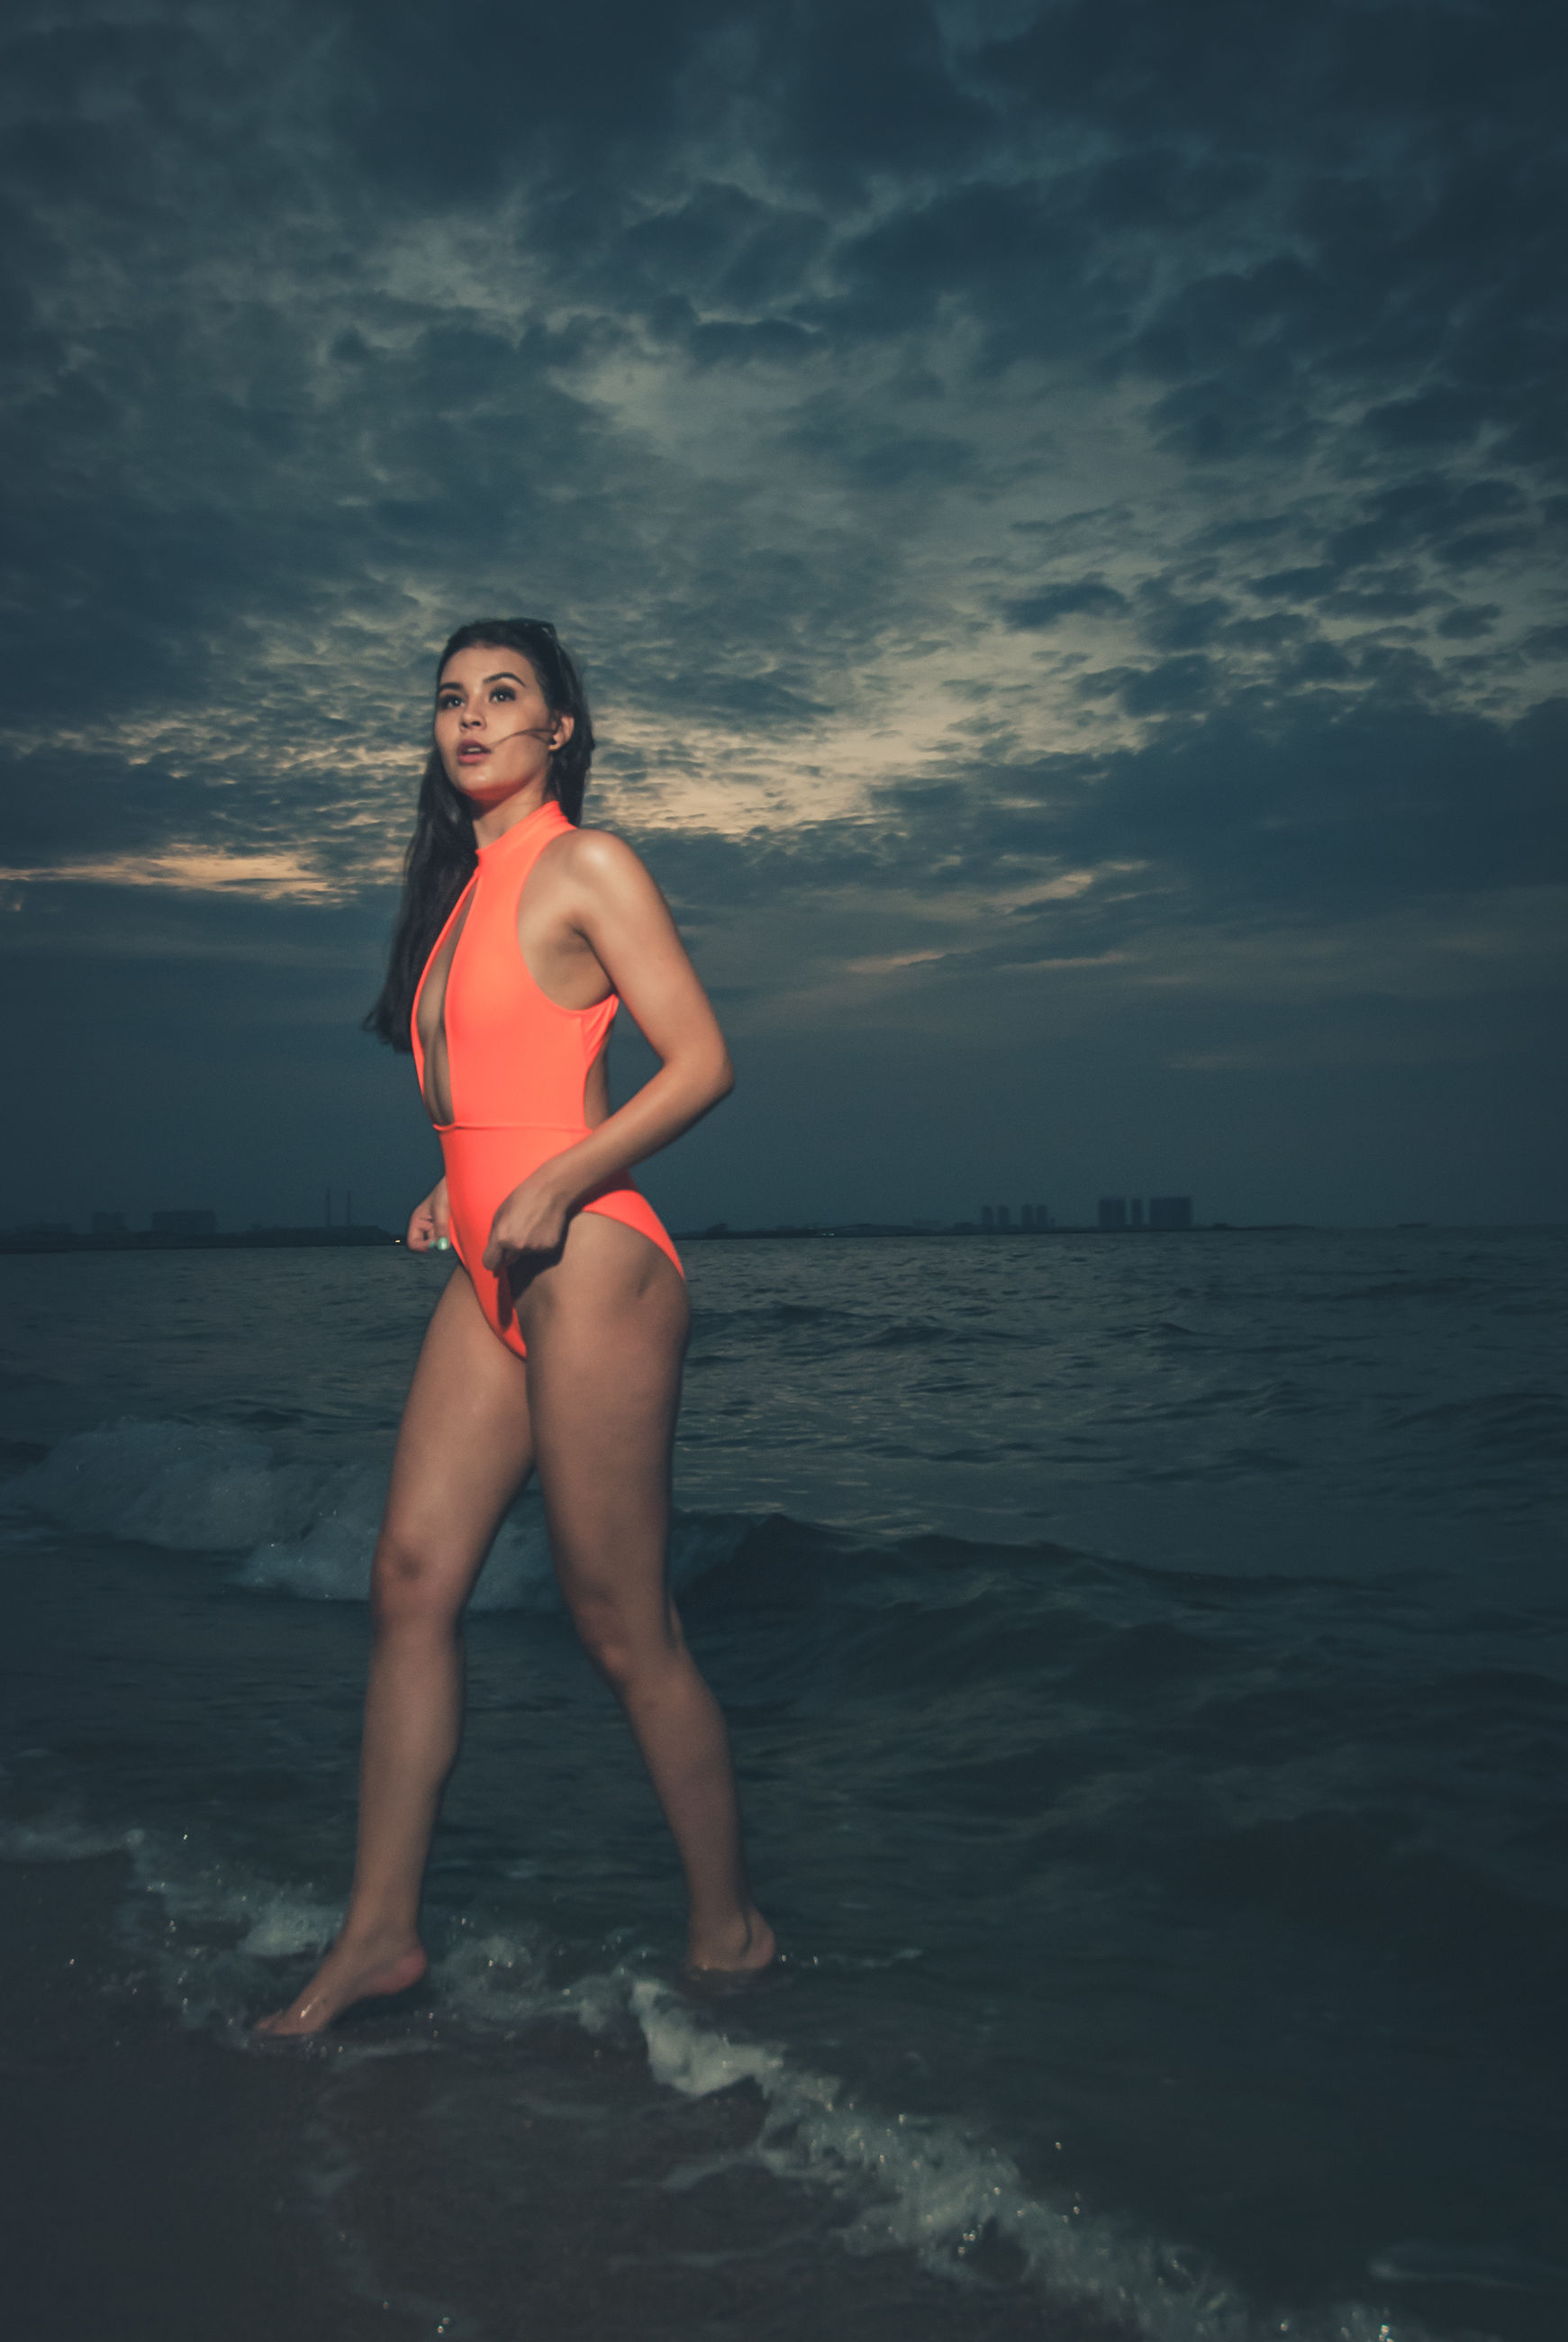 sky, sea, one person, water, cloud - sky, lifestyles, young adult, beauty in nature, real people, full length, swimwear, clothing, young women, nature, leisure activity, scenics - nature, sunset, women, horizon over water, beautiful woman, outdoors